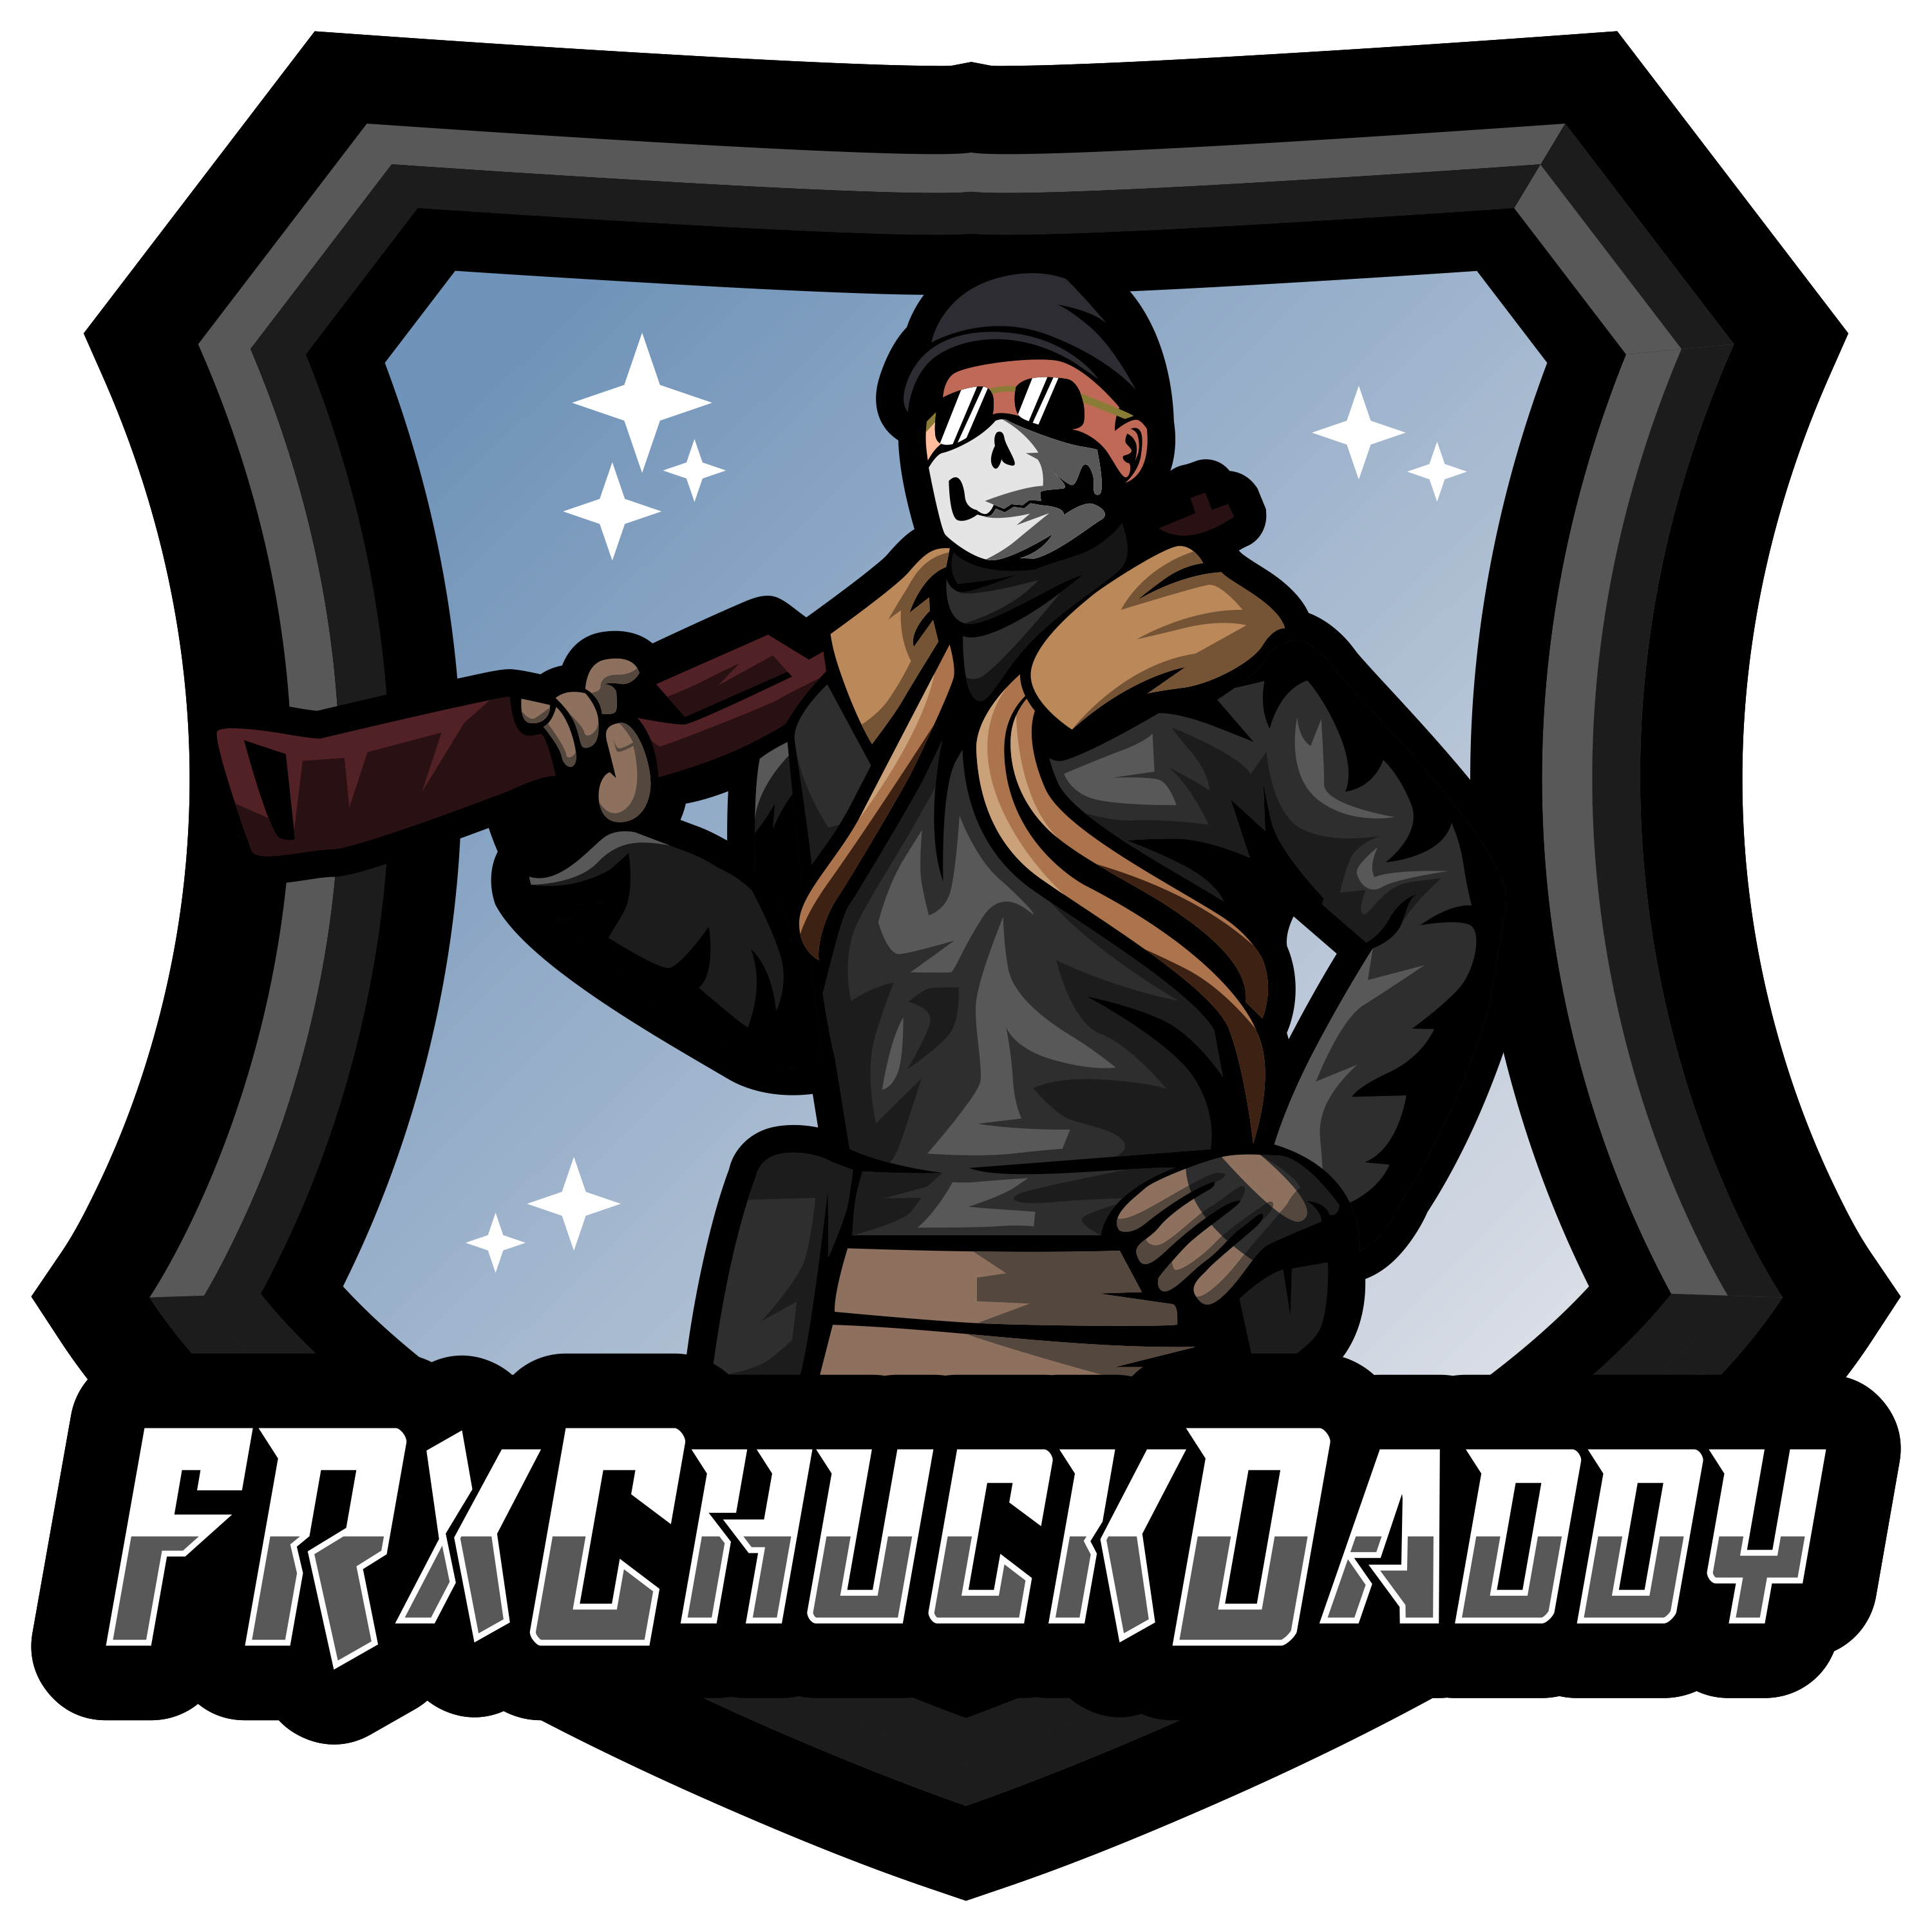 FRxChuckDaddy Gaming Zombies Review